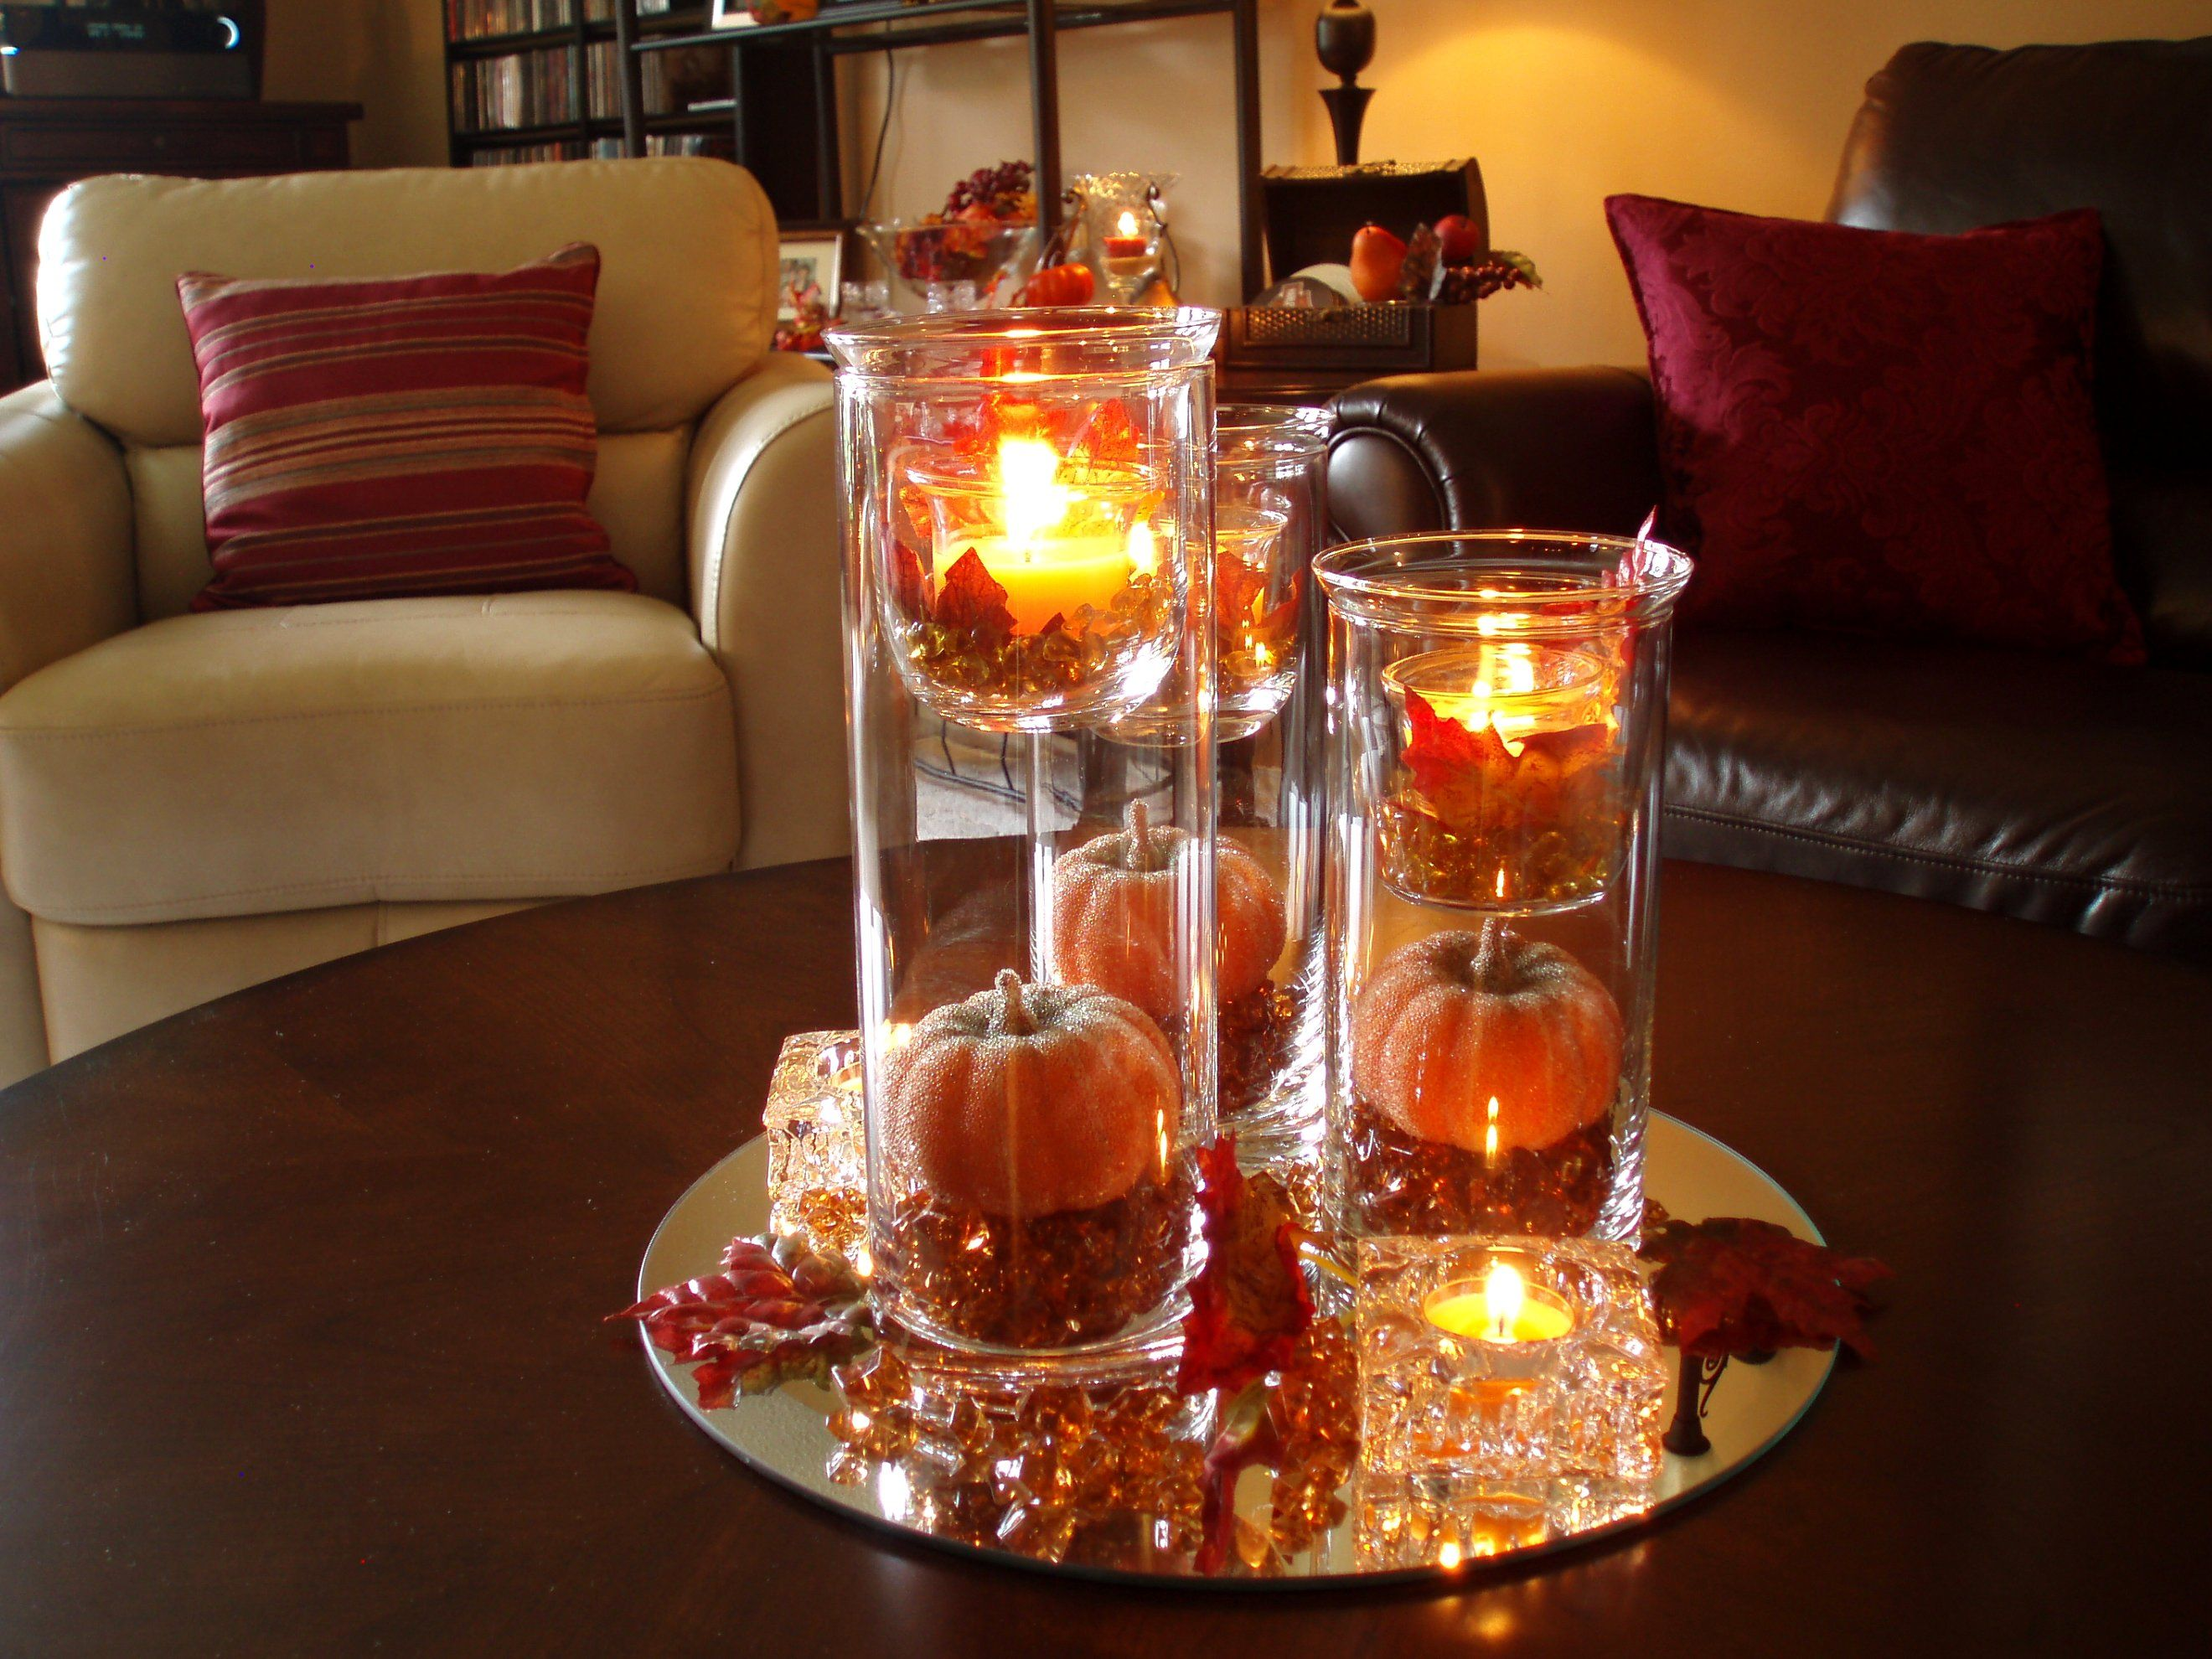 chic small coffee table decorations design with red rose flower easy decoration ideas awesome light candle - Easy Christmas Table Decorations Ideas